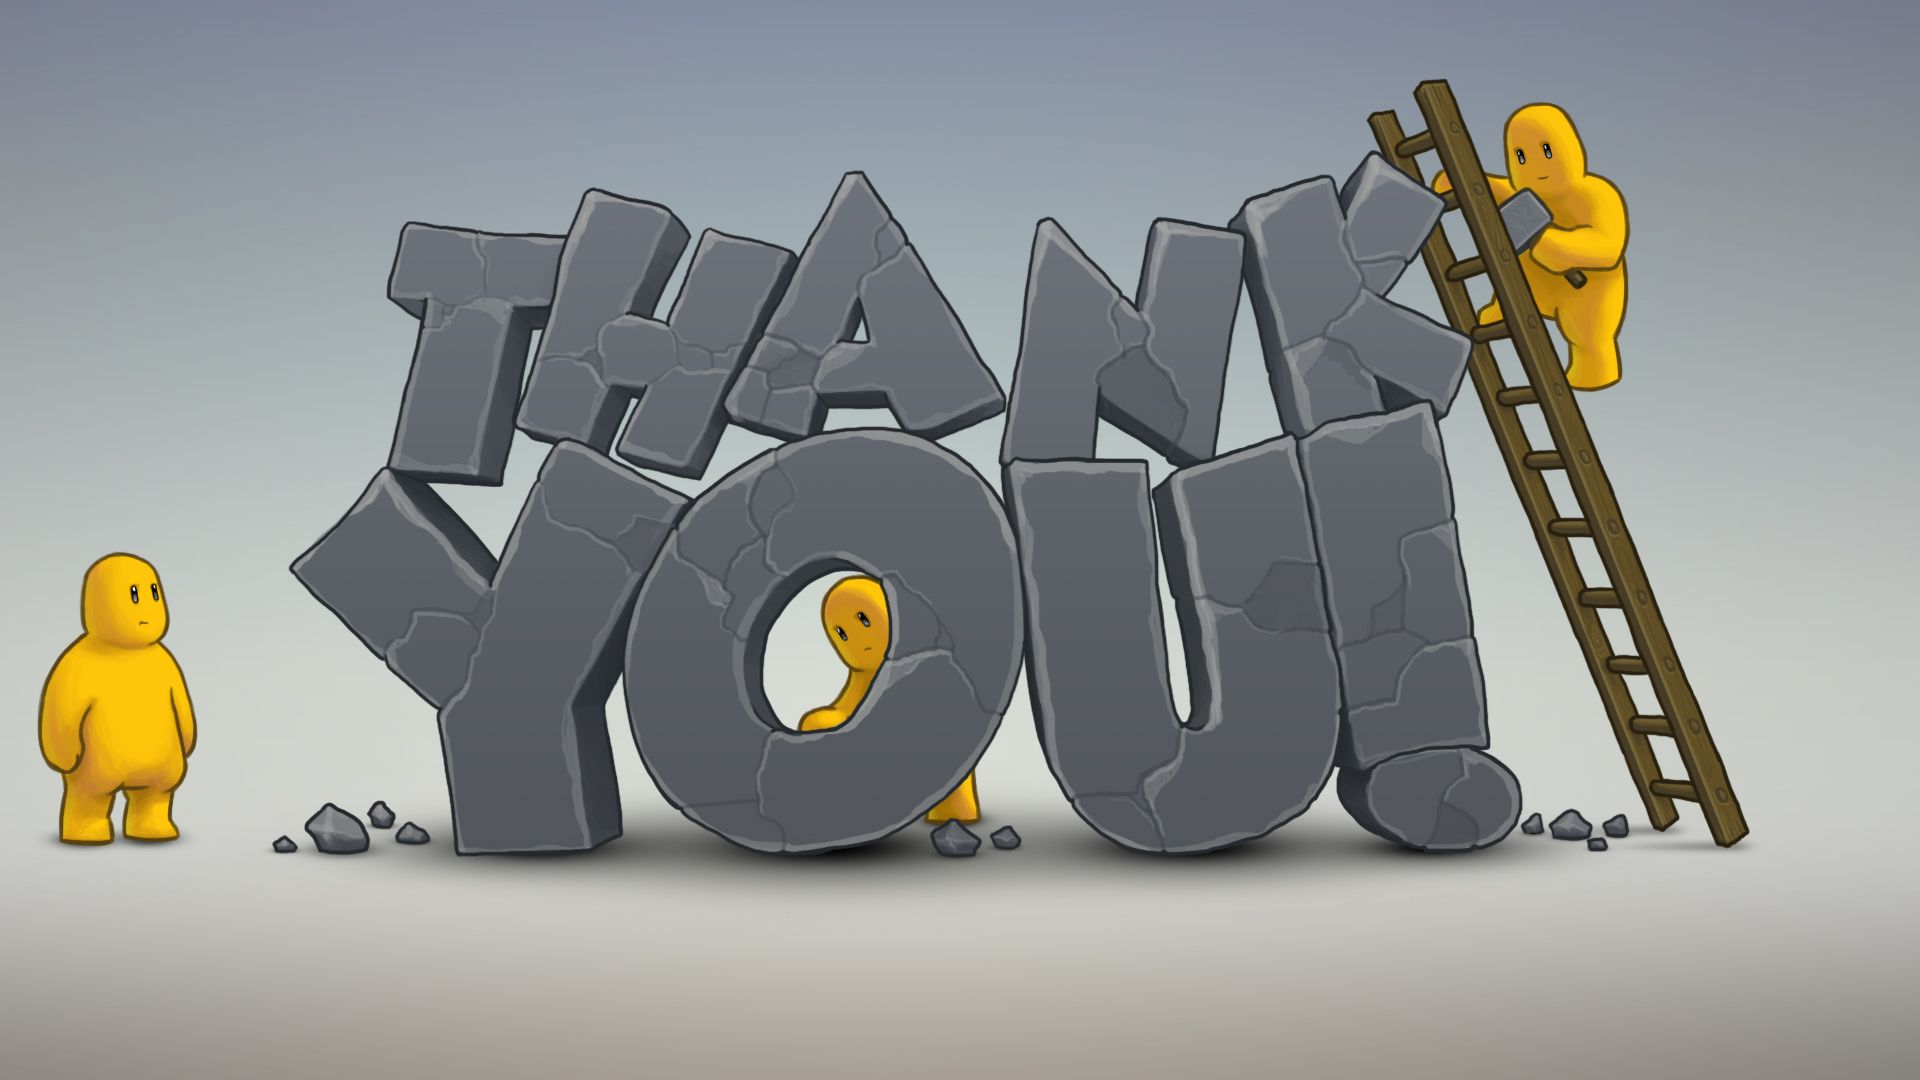 3d Thank You Desktop Hd Wallpaper Ideas For The House Thank You